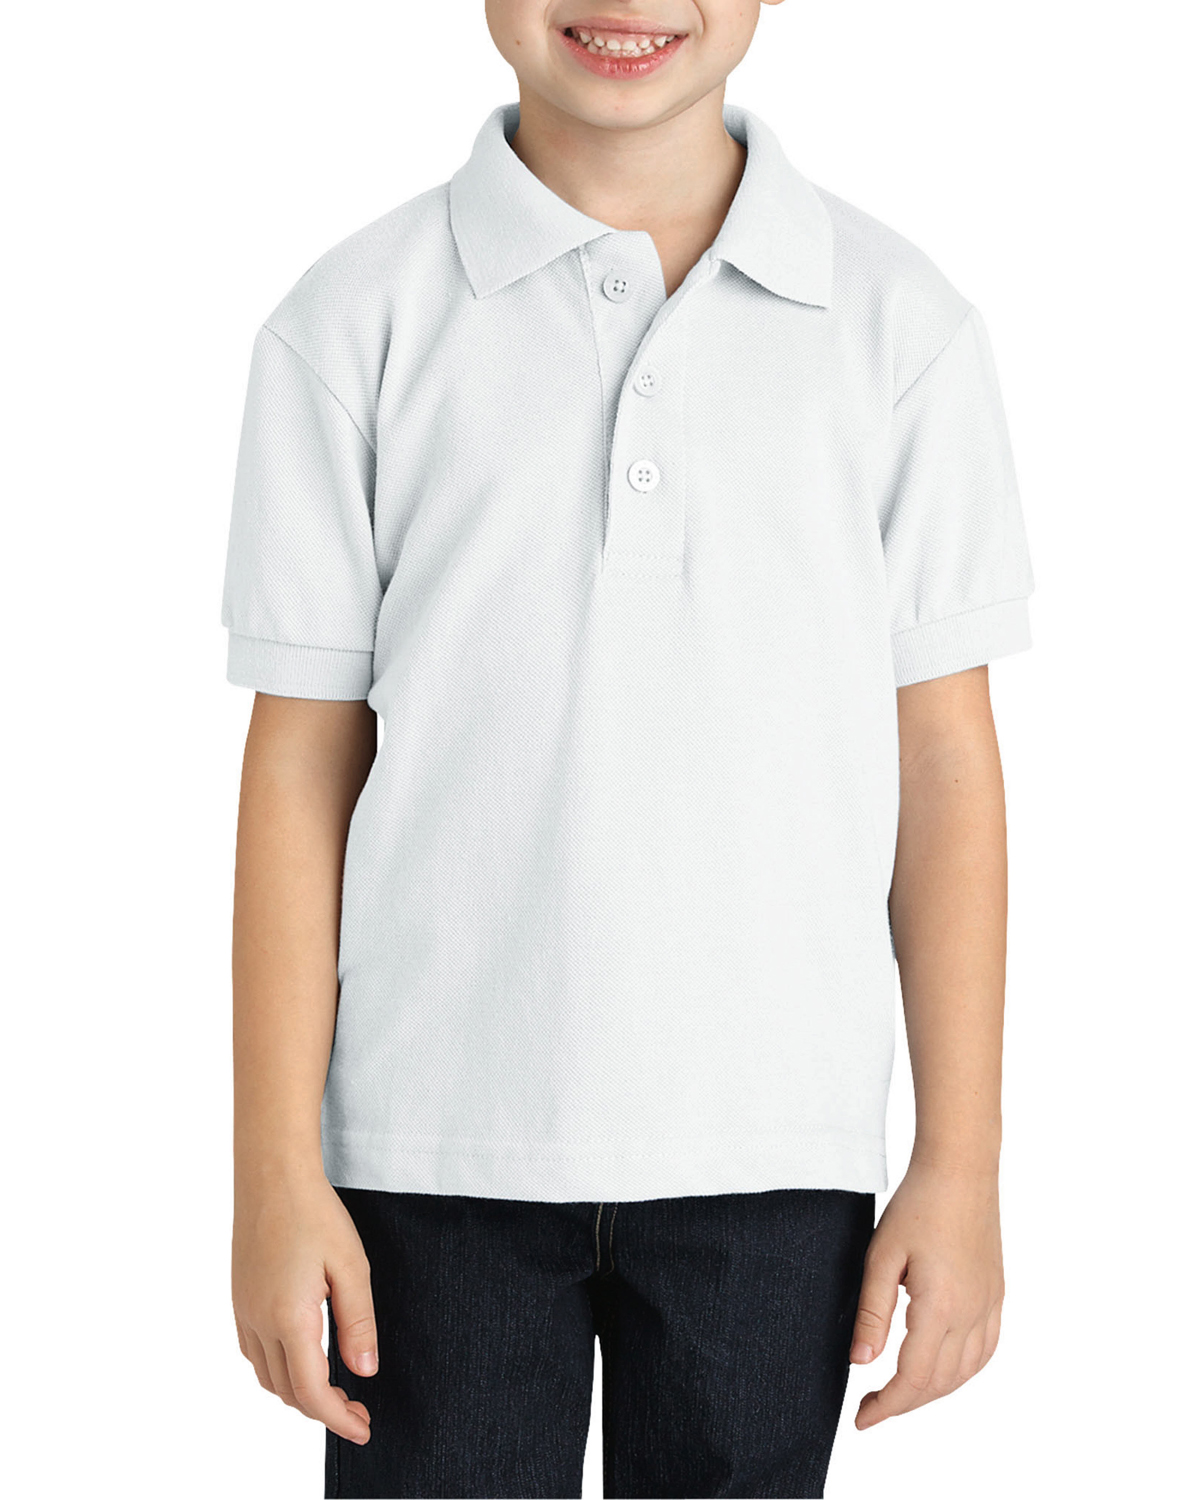 Youth  Short-Sleeve Pique Polo